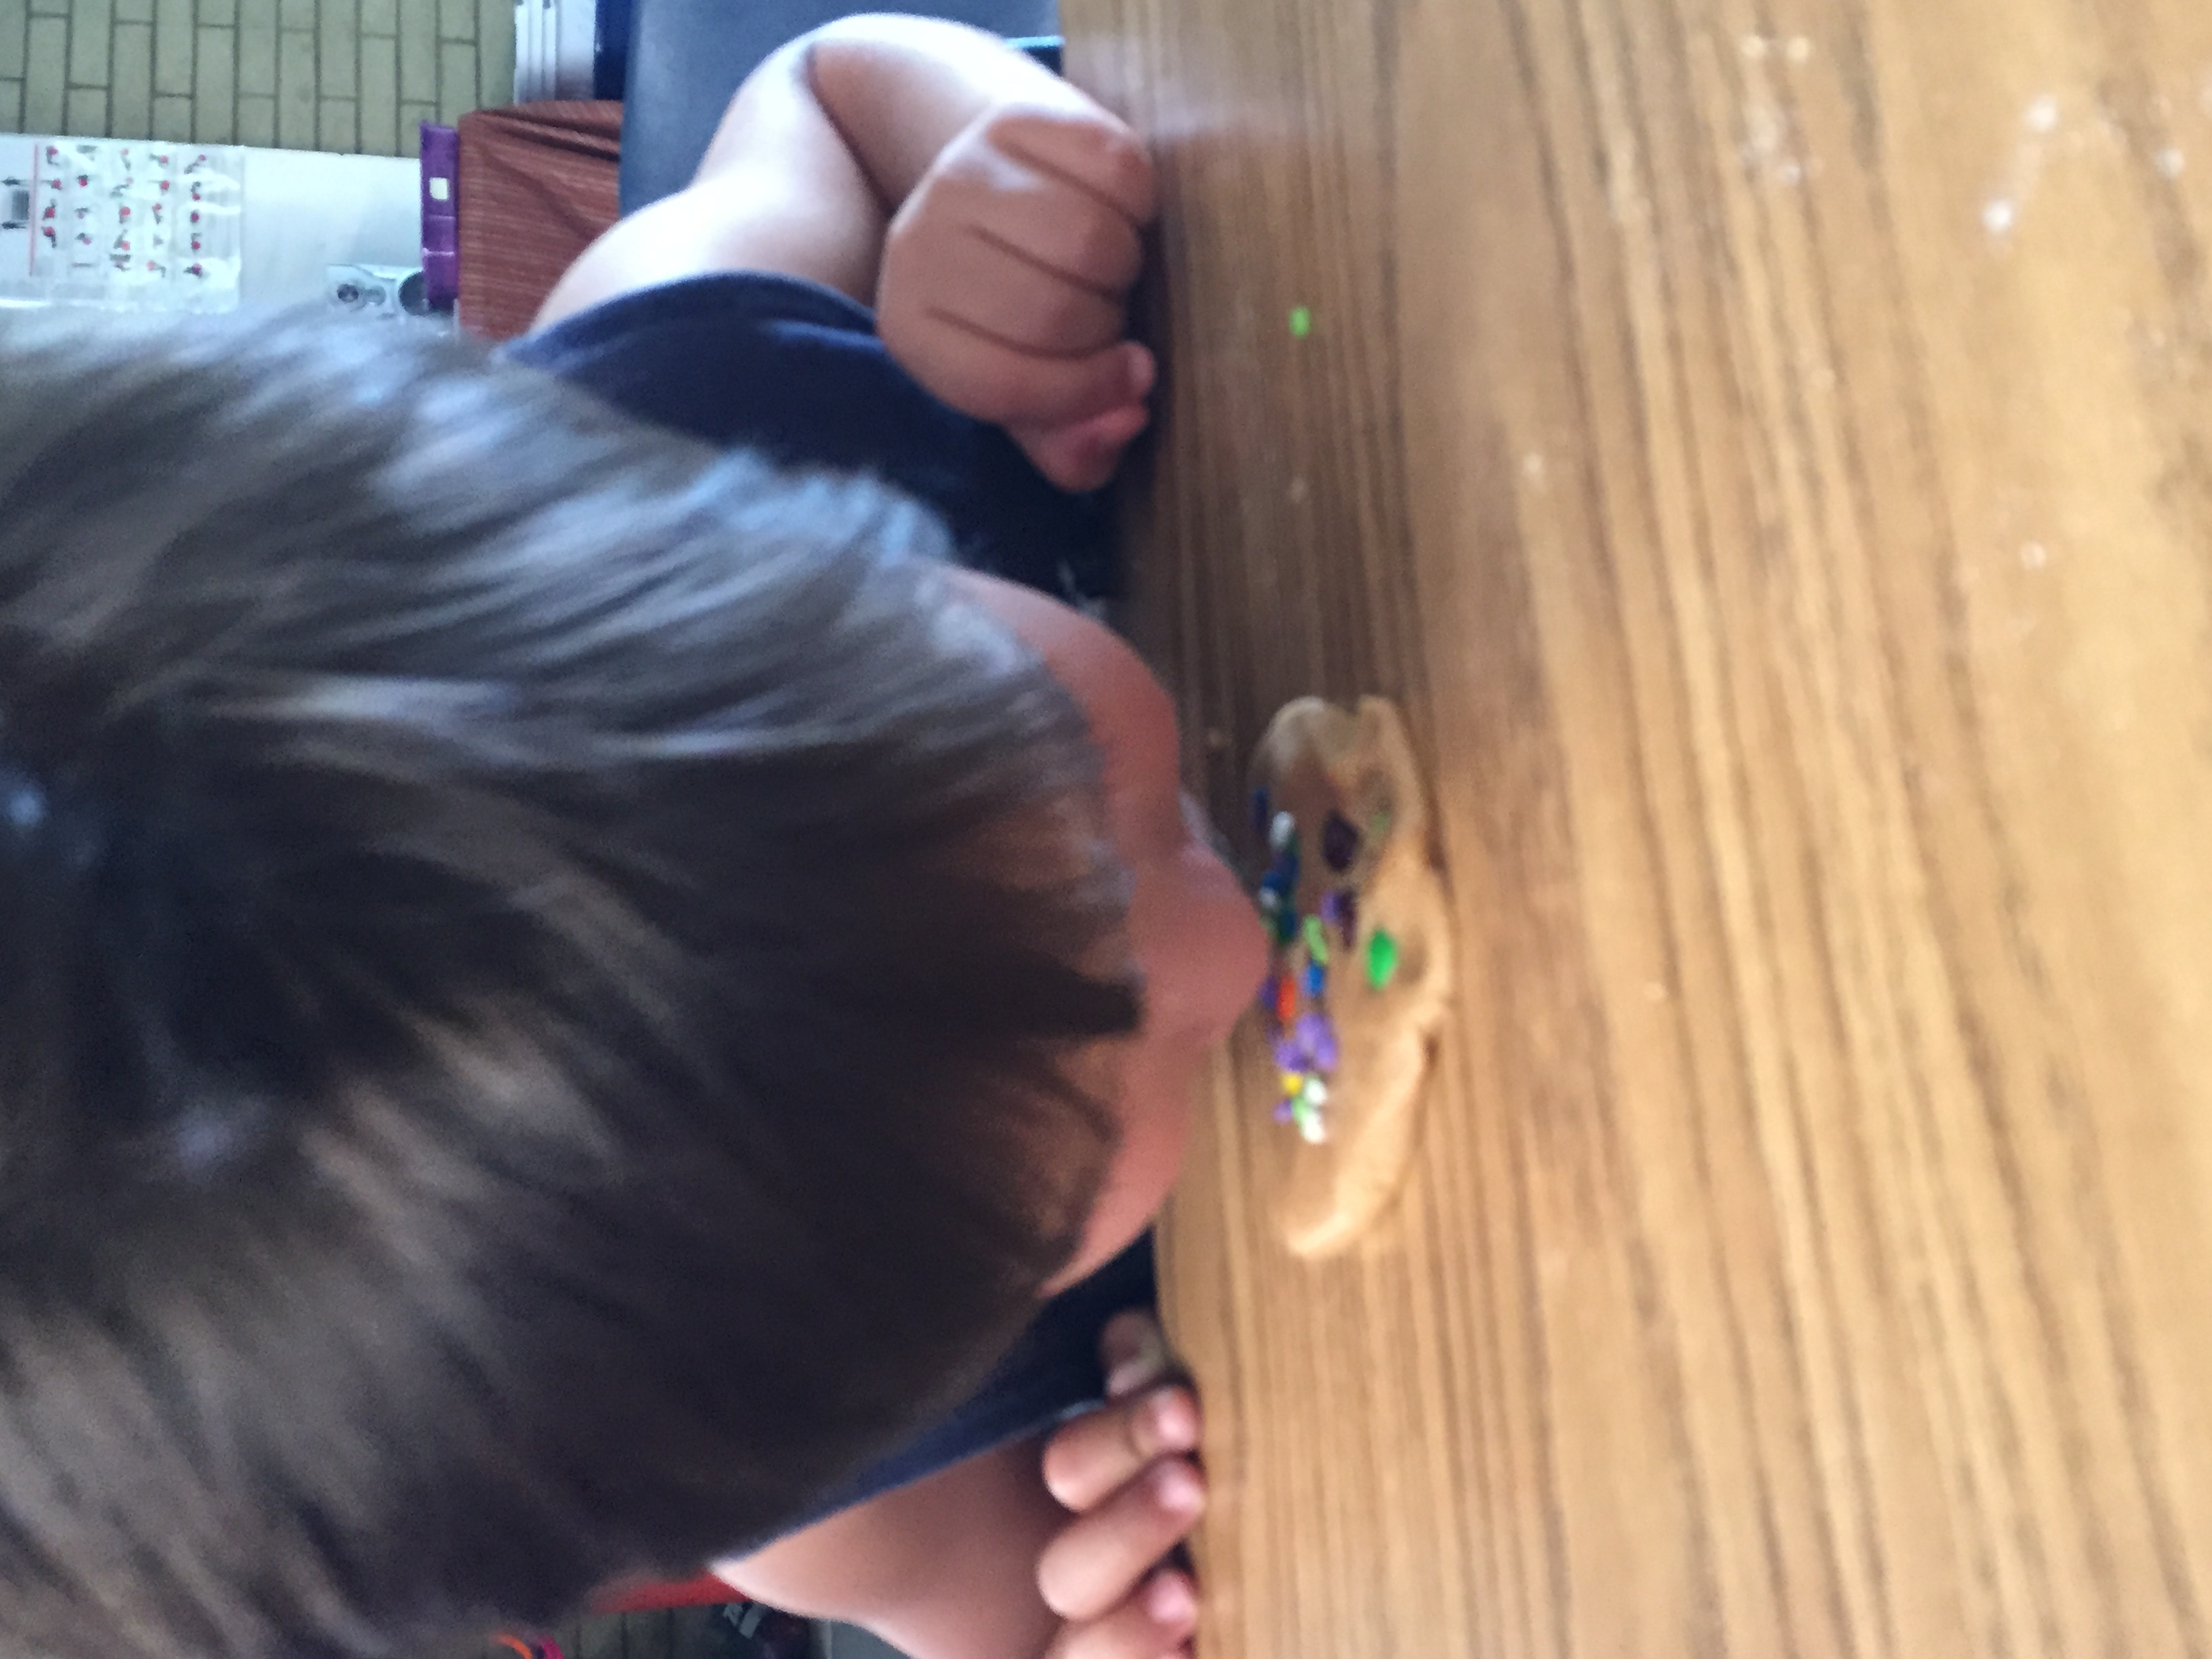 Young boy eating cookie